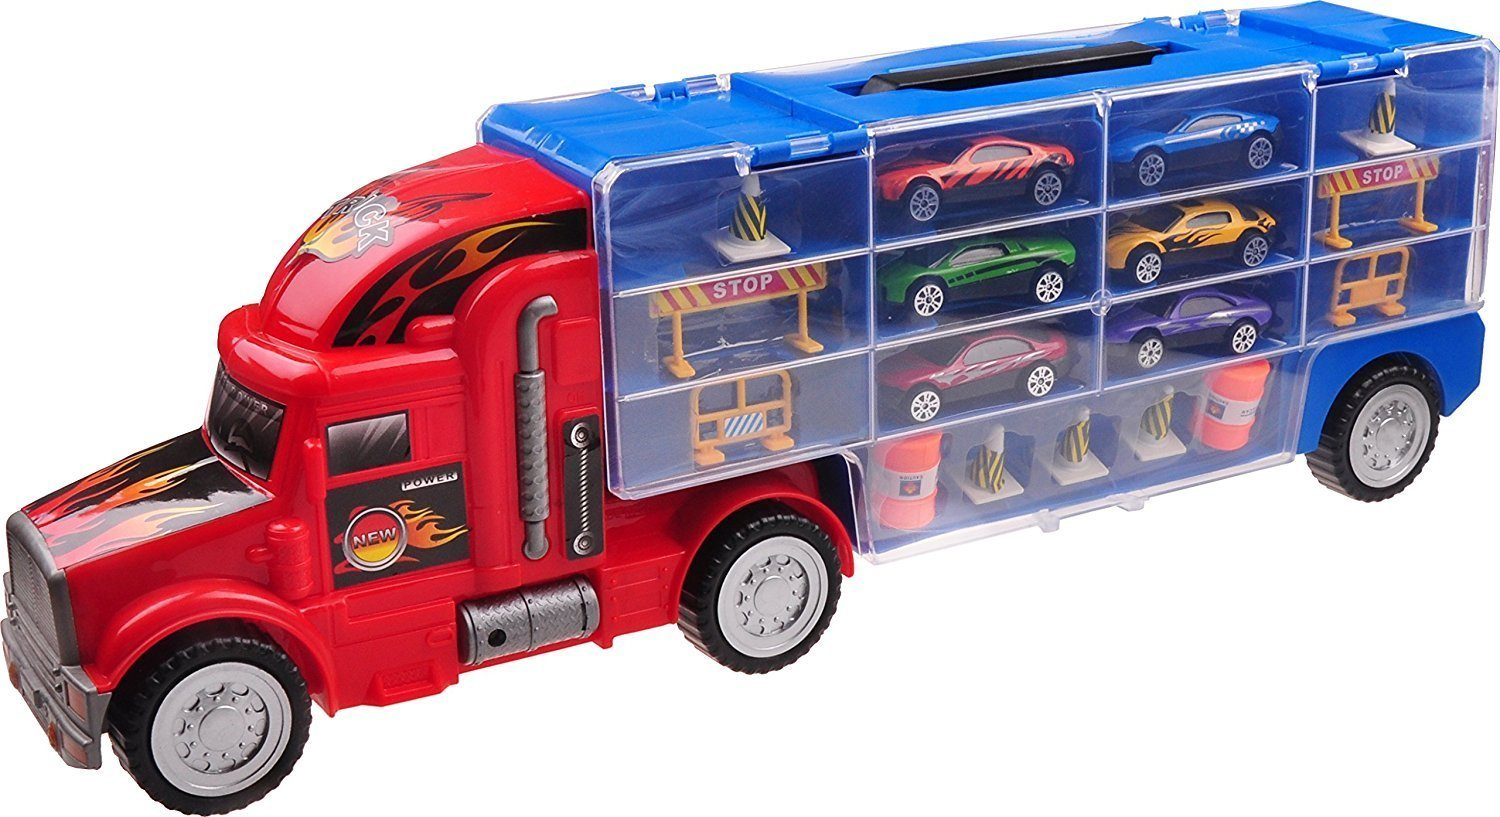 Car Transporter Toy For Boys & Girls TG664 – Cool Toy Truck With 12 Cars and Many Extra Accessories By ThinkGizmos (Trademark Protected) Think Gizmos